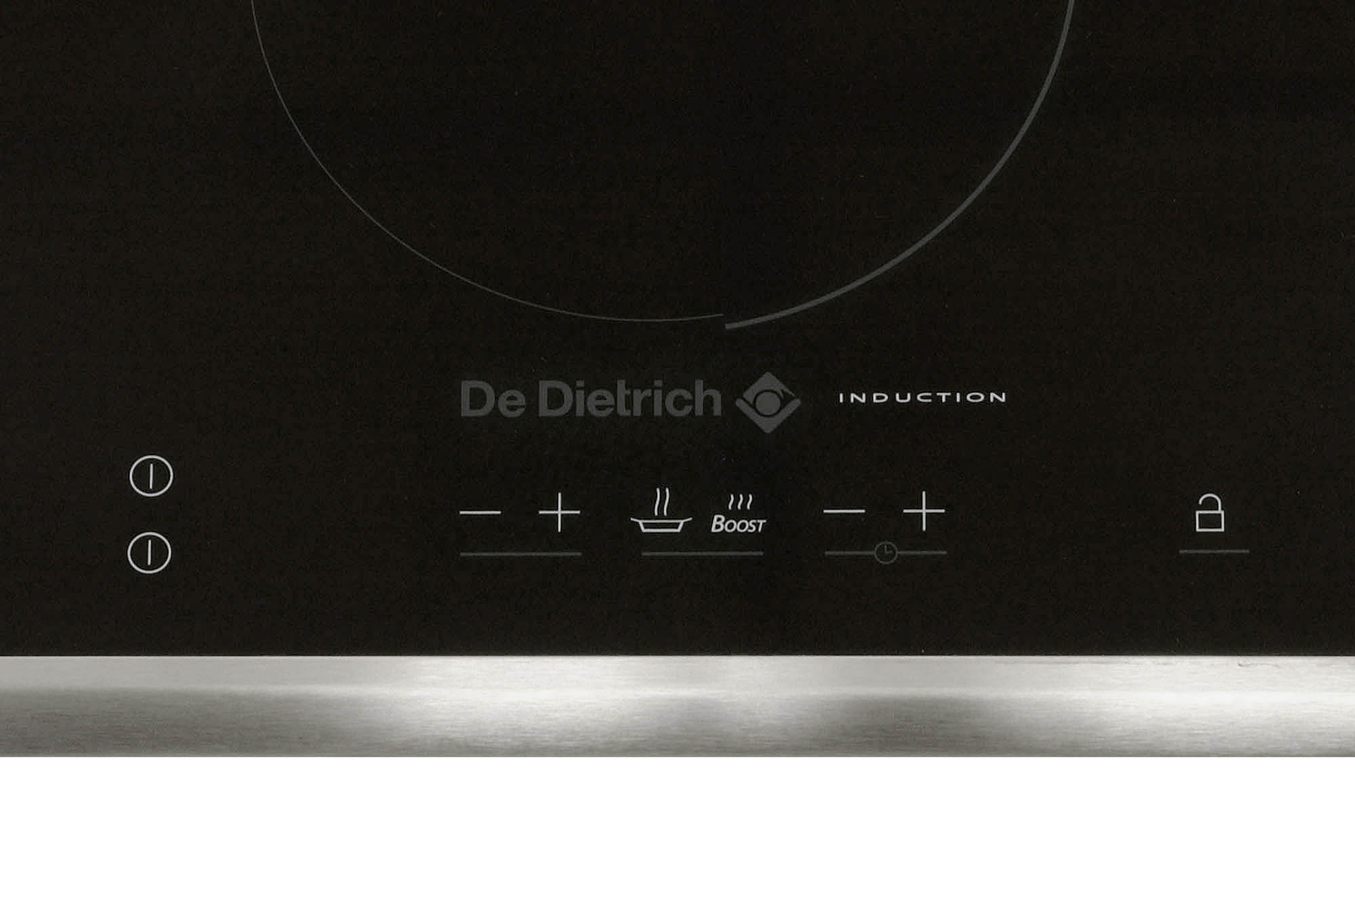 Plaque induction de dietrich 2 feux appareils m nagers - Plaque a induction 2 feux ...